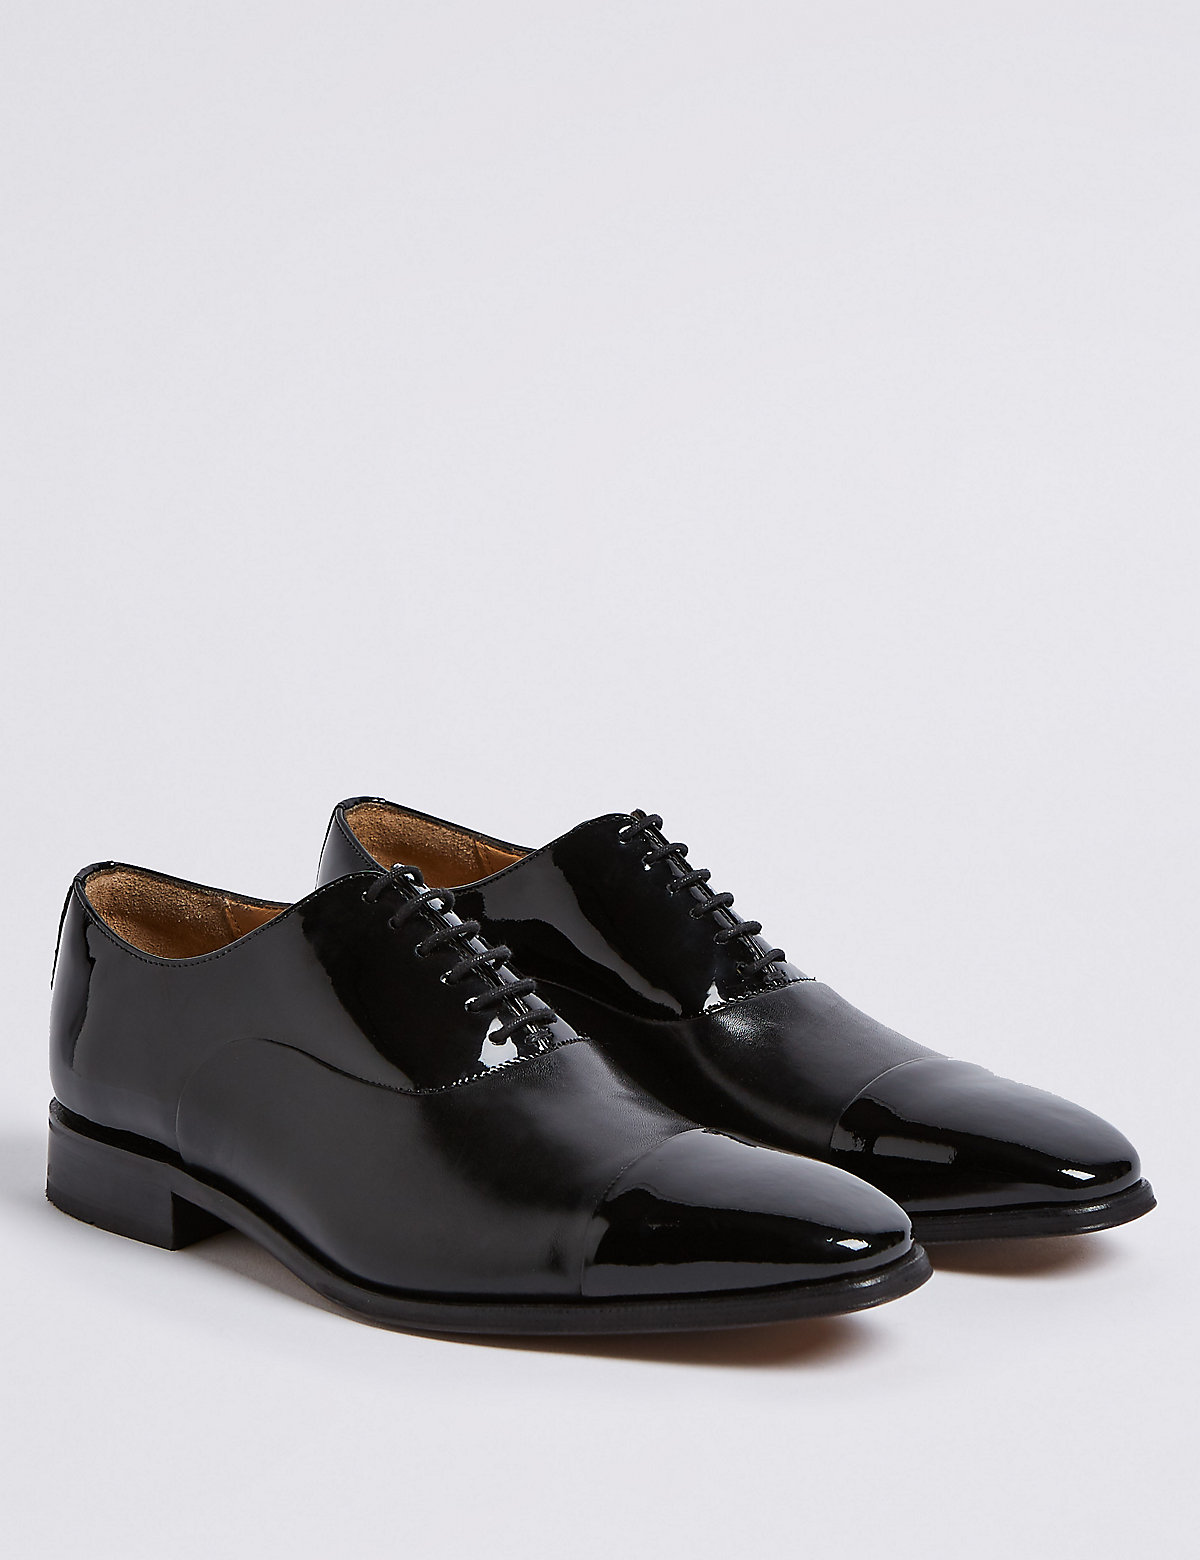 Marks & Spencer Black High Shine Leather Lace-up Derby Shoes